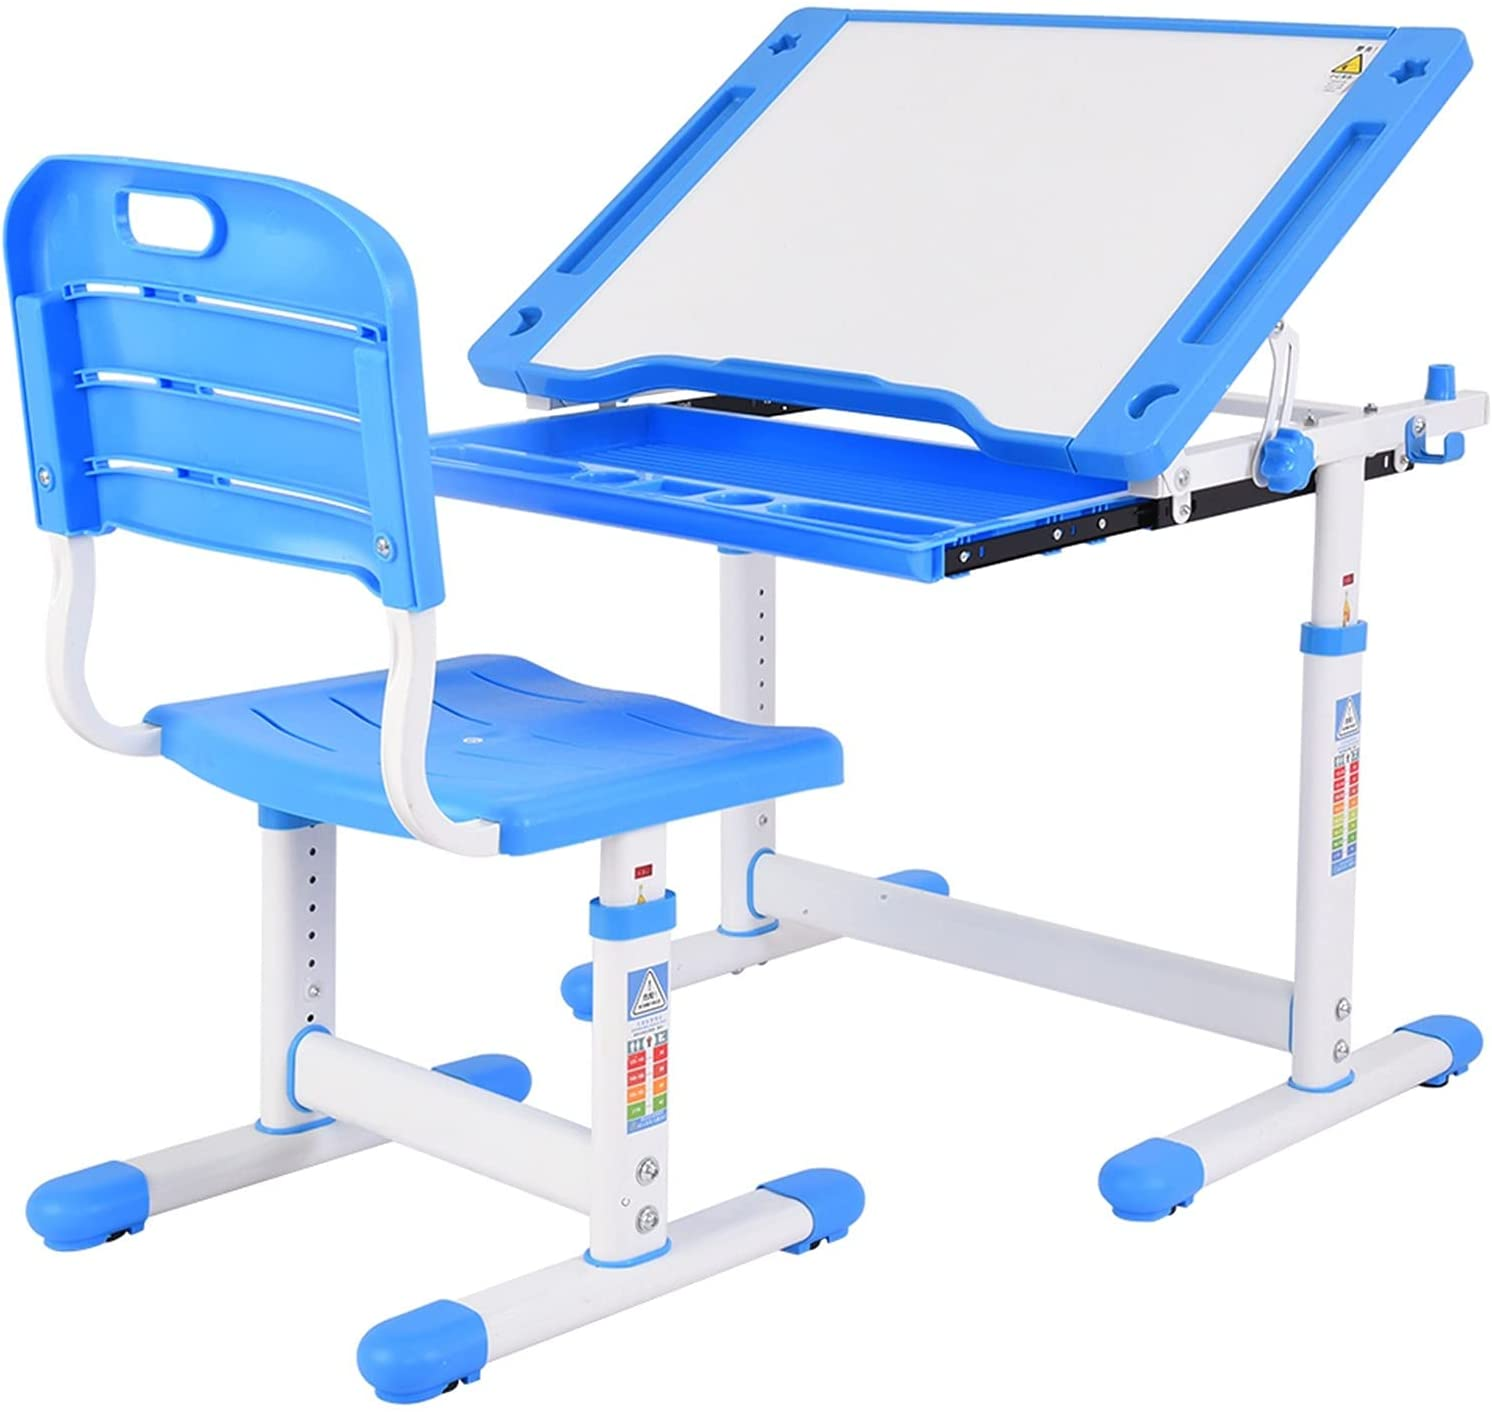 EWGQWB Child Table and Chair Set Adjustable Now free shipping S Height Drawer with Austin Mall